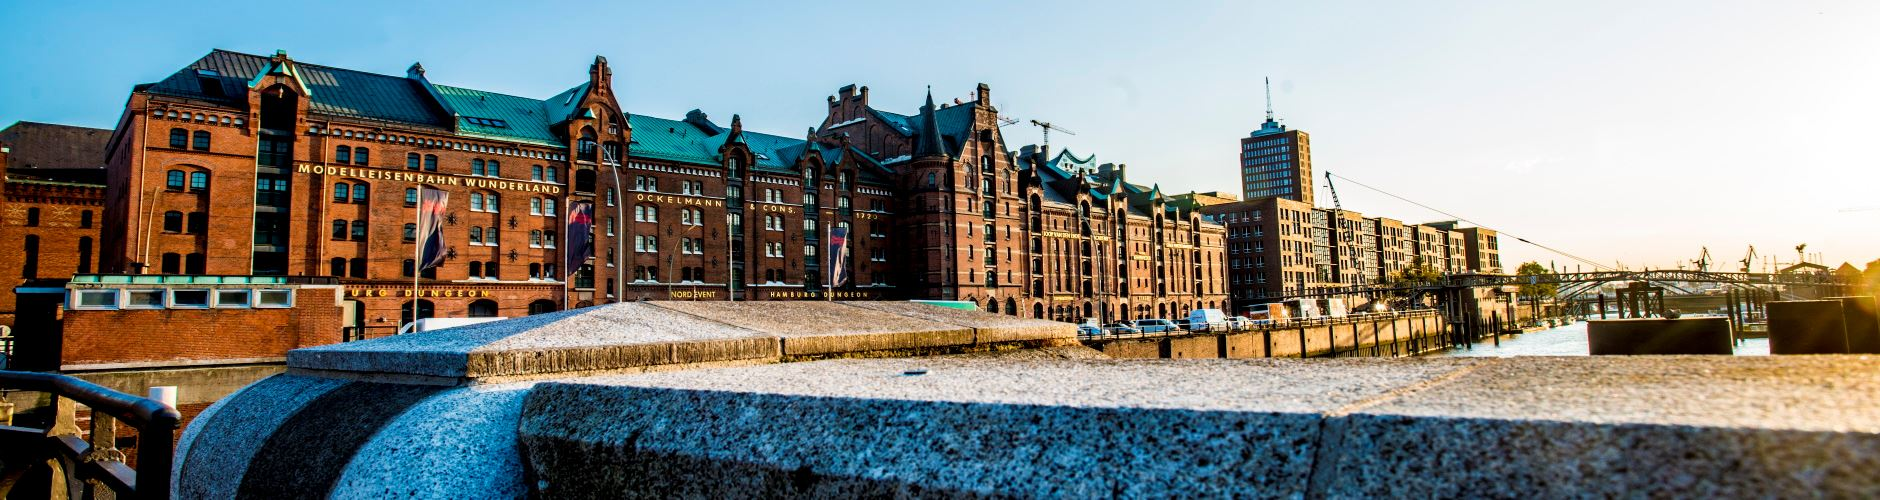 gallery_speicherstadt-in-hamburg-sightseeing